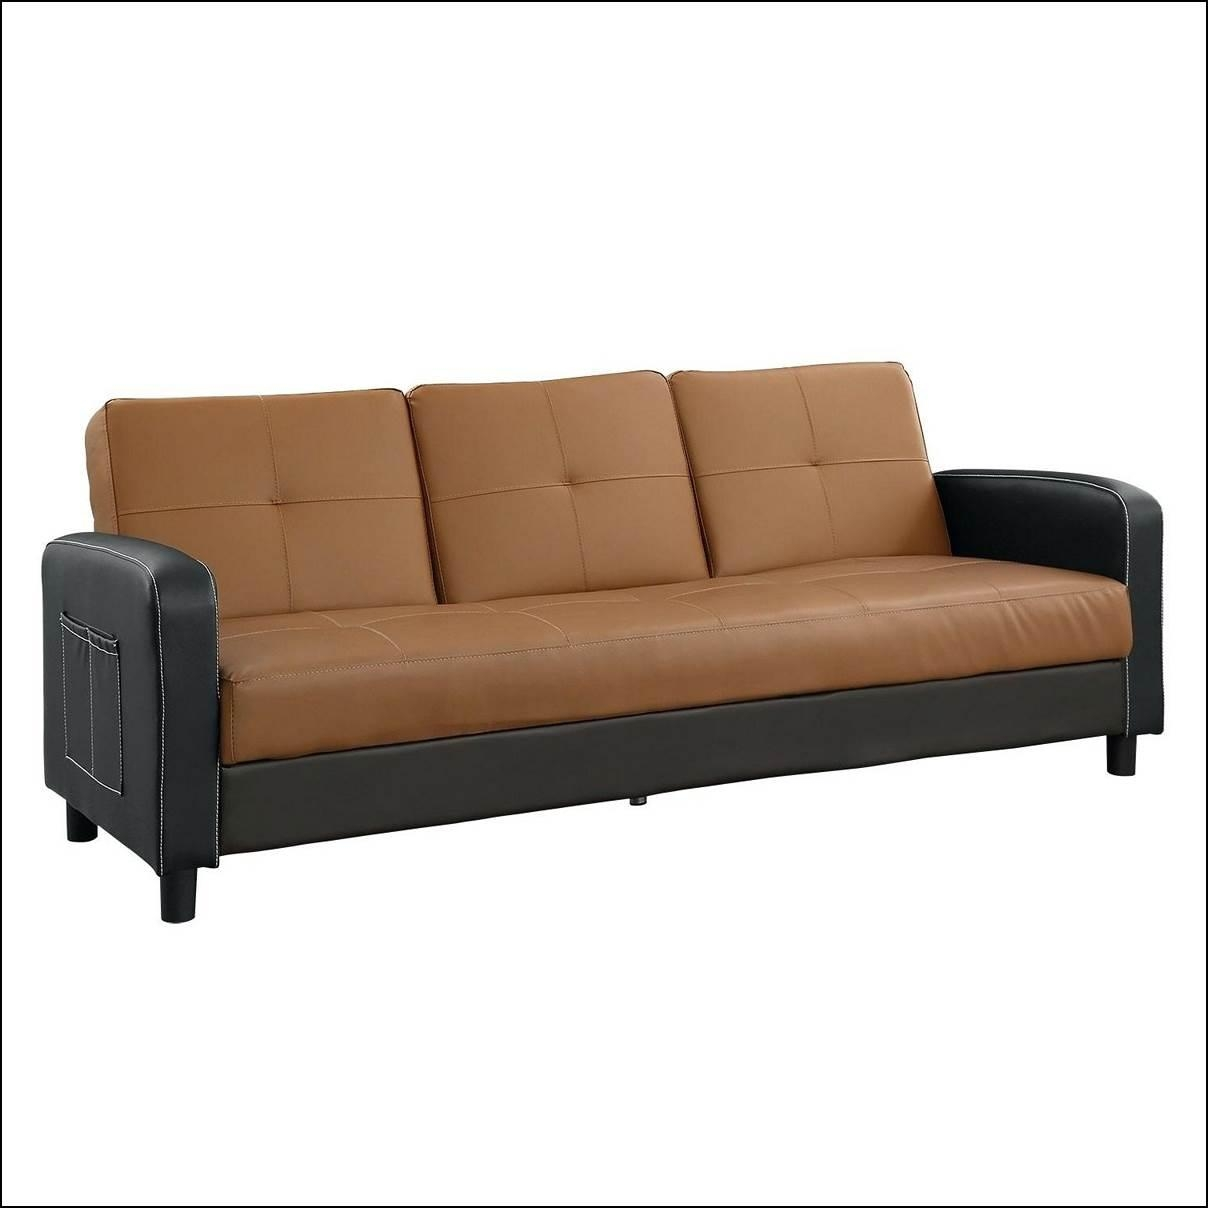 27 Gallery Of Best Sleeper Sofas And Sofa Beds | Best Living Room regarding Leather Corner Sofas